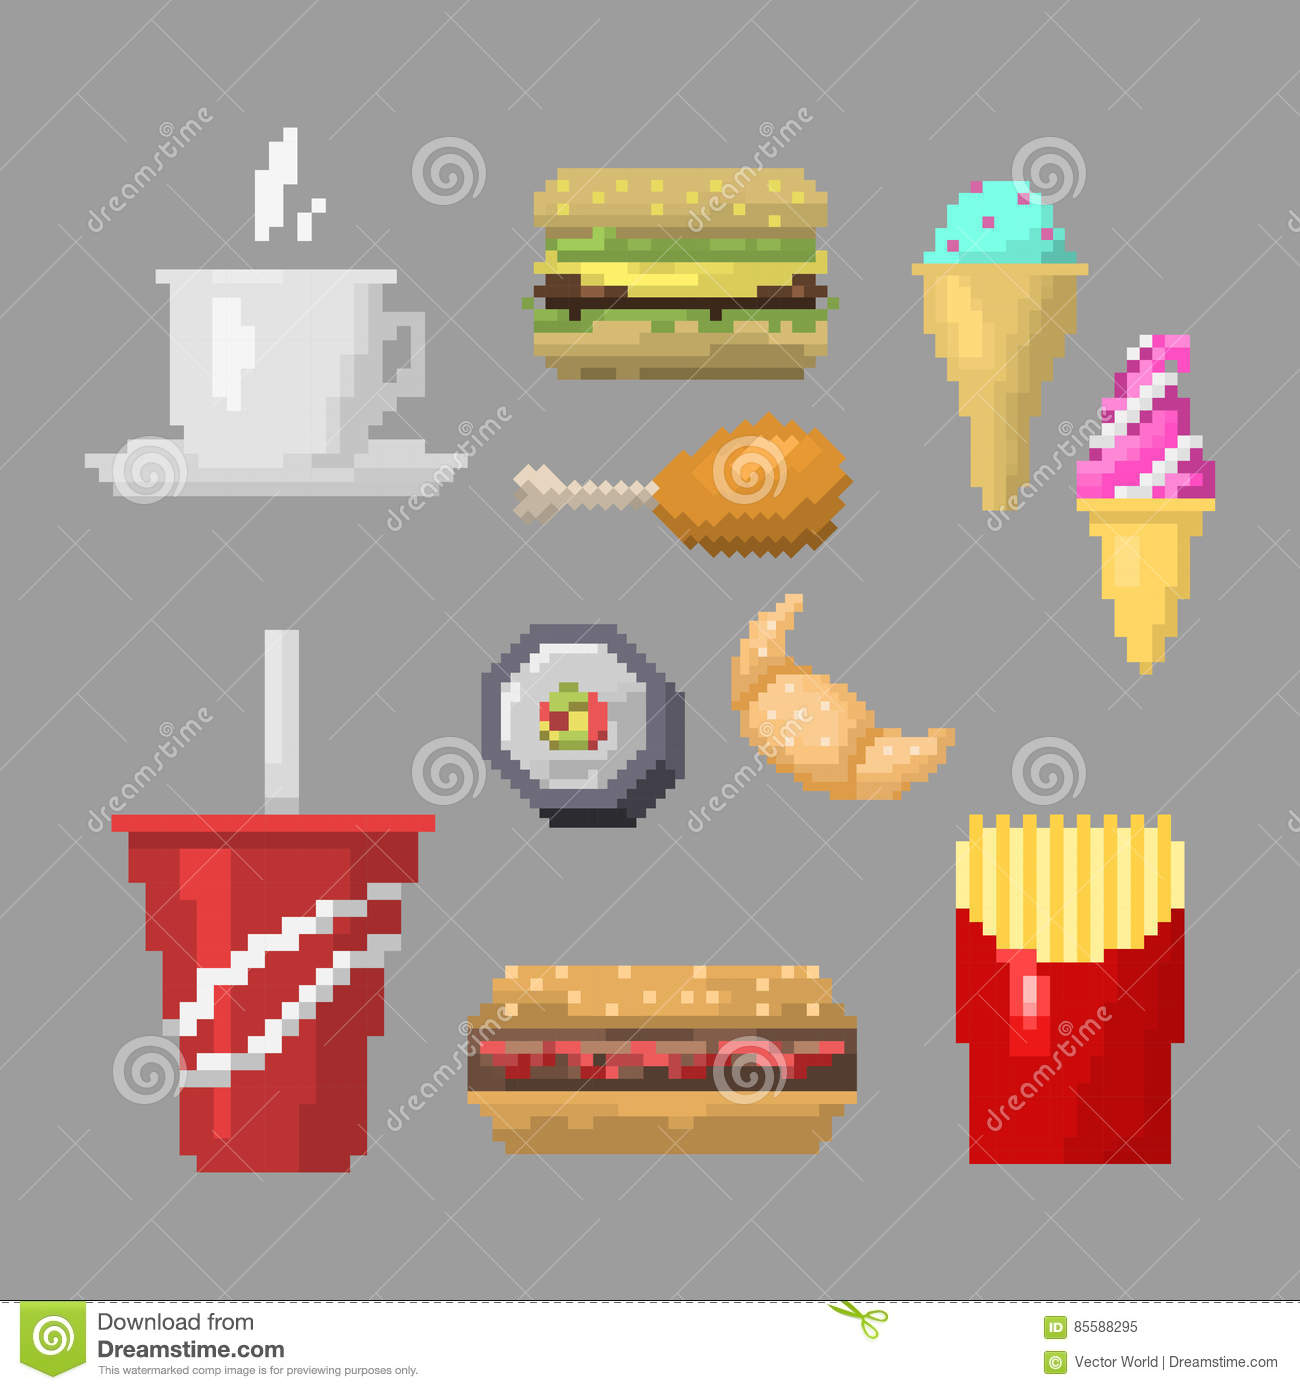 For restaurant pictures graphics illustrations clipart photos - Royalty Free Vector Art Breakfast Design Element Fast Food Game Graphic Illustration Pixel Pixelated Restaurant Retro Vector